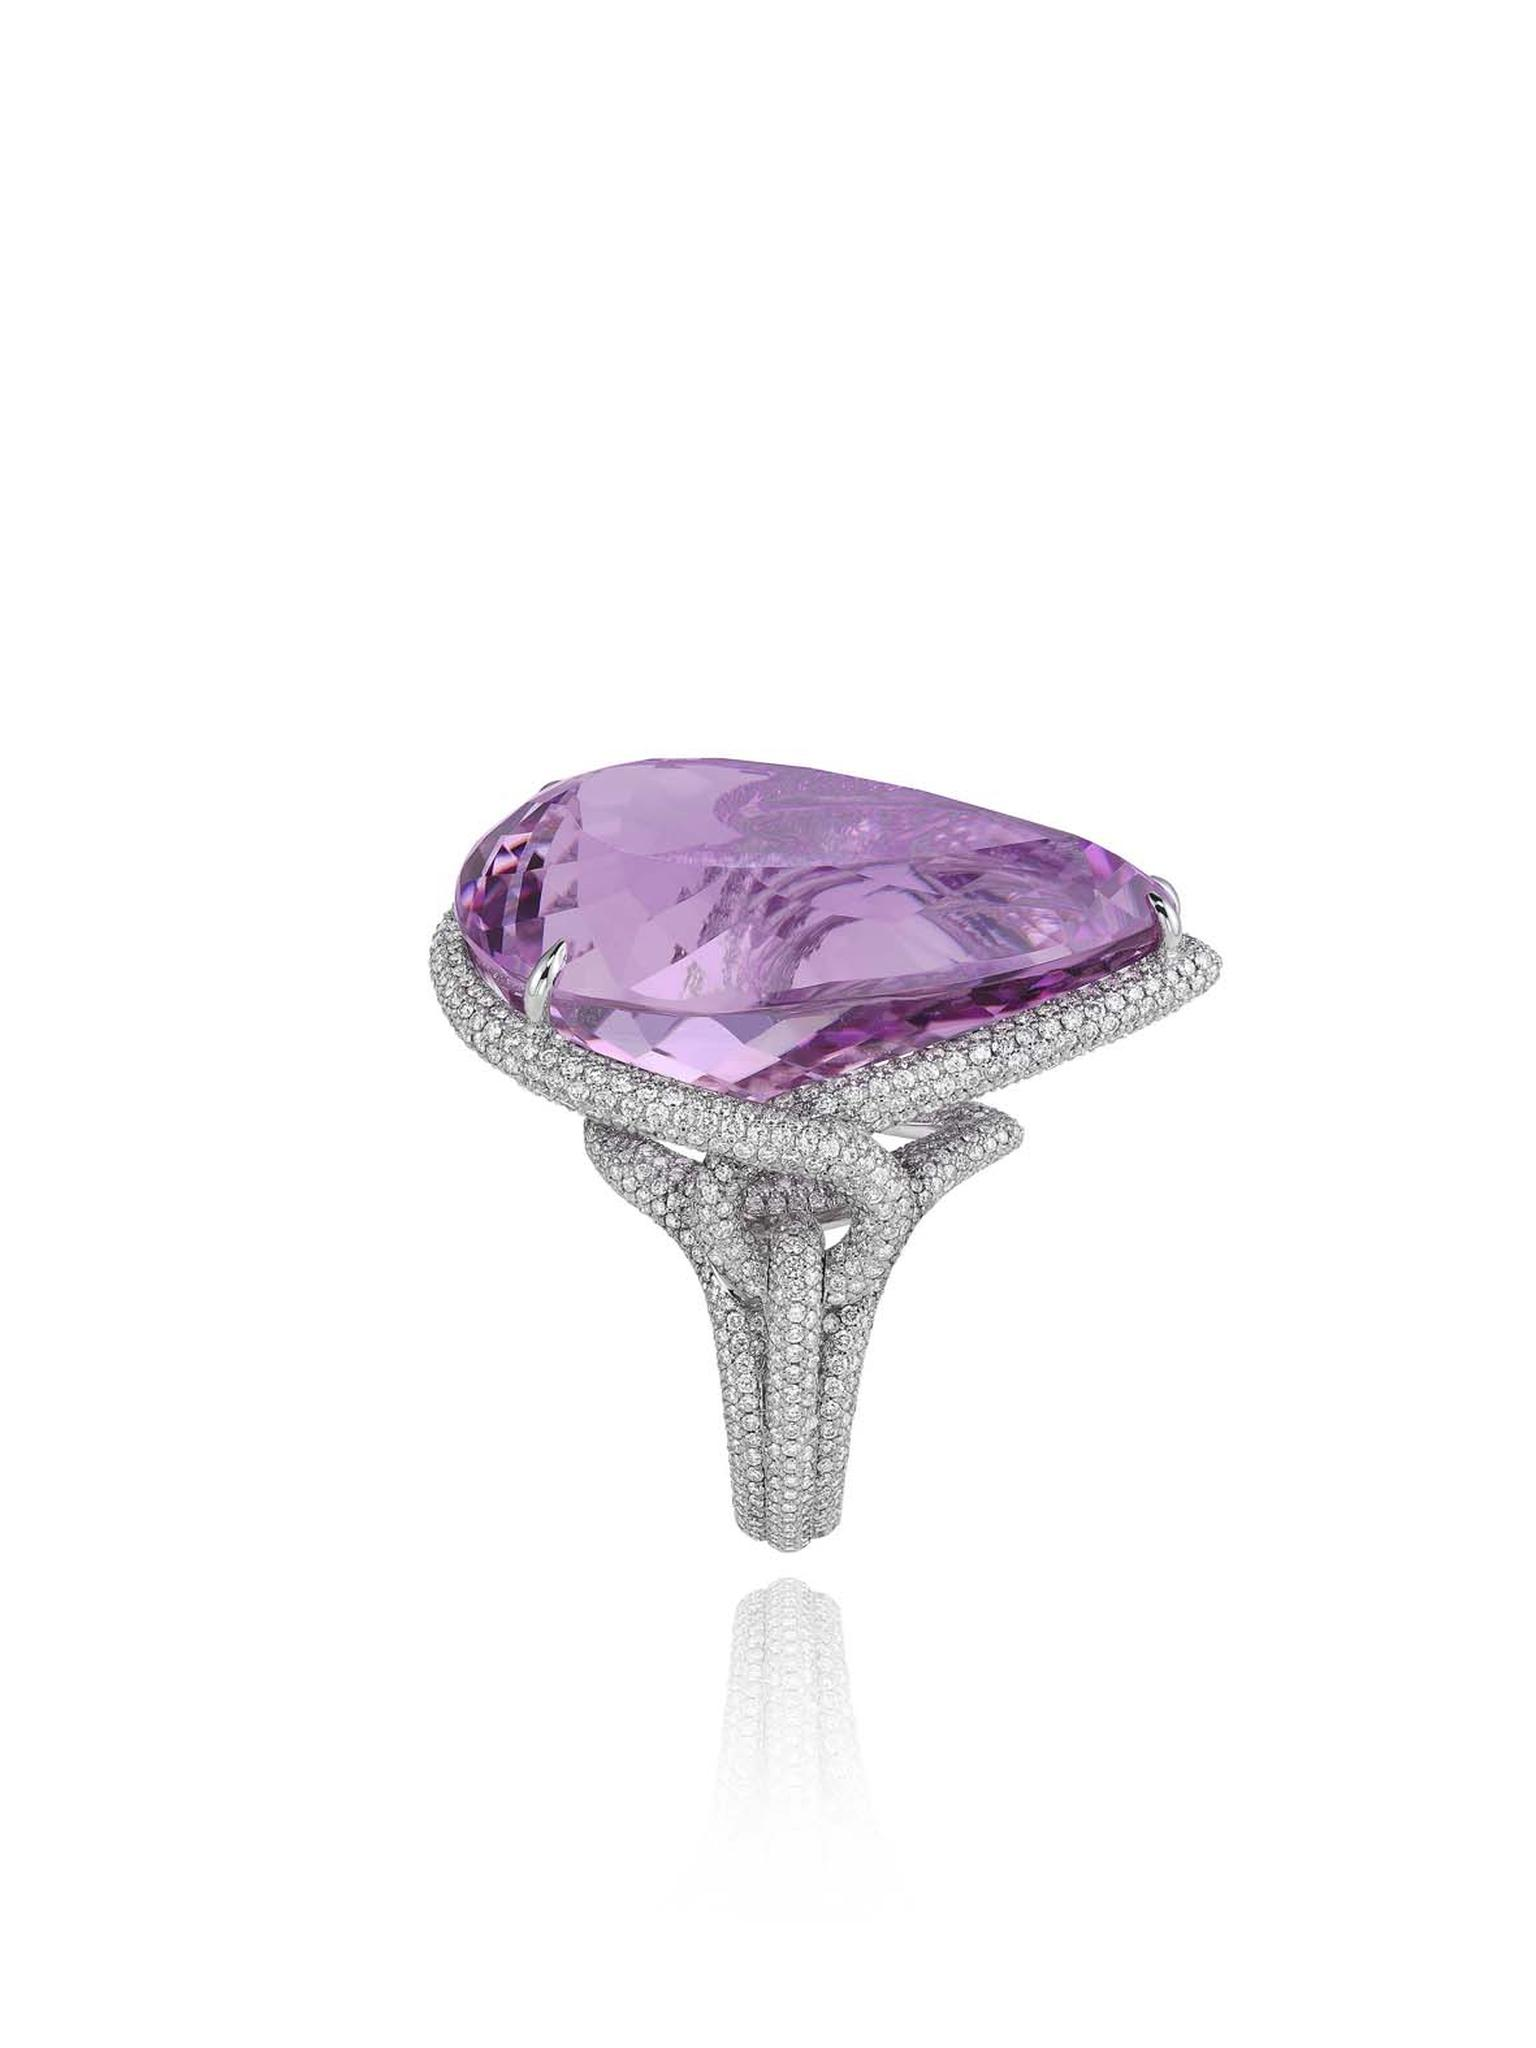 829174-1002 Kunzite Ring  from the Red Carpet Collection 2013ChopardChopard.jpg